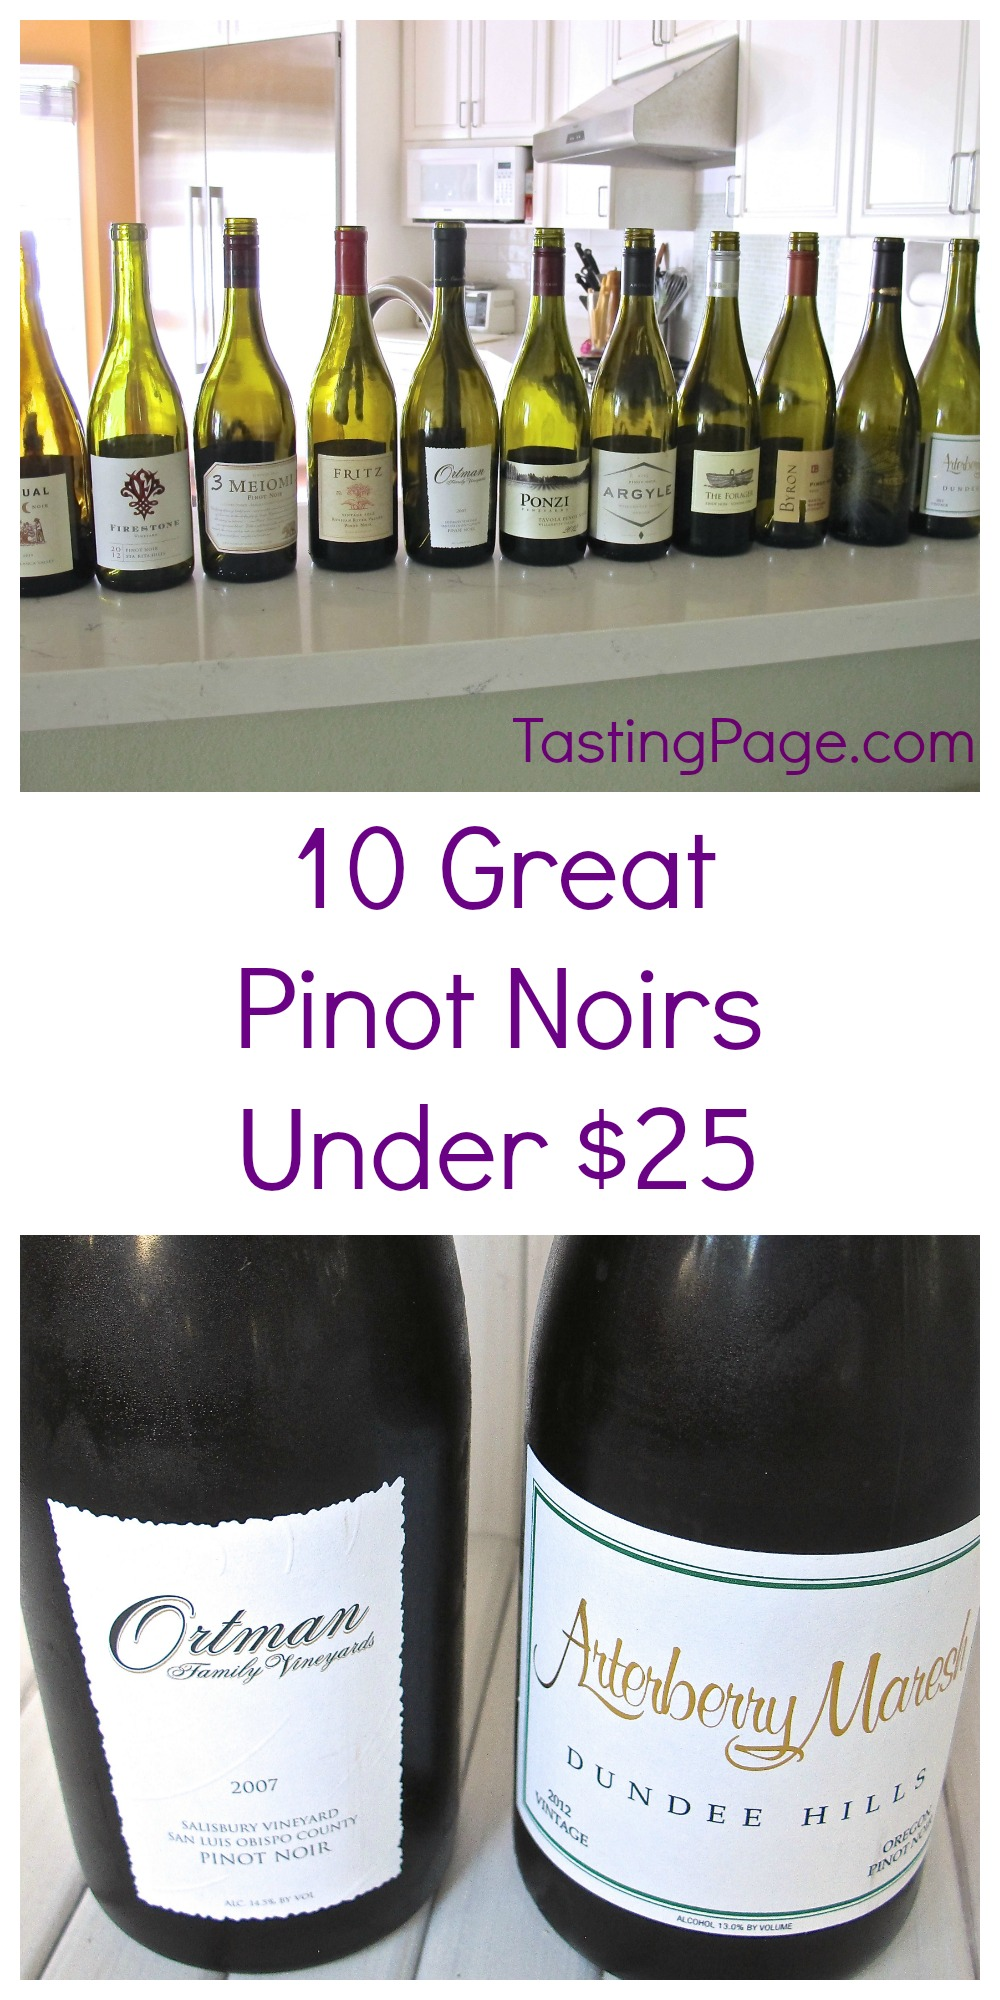 10 Great Pinot Noirs Under $25